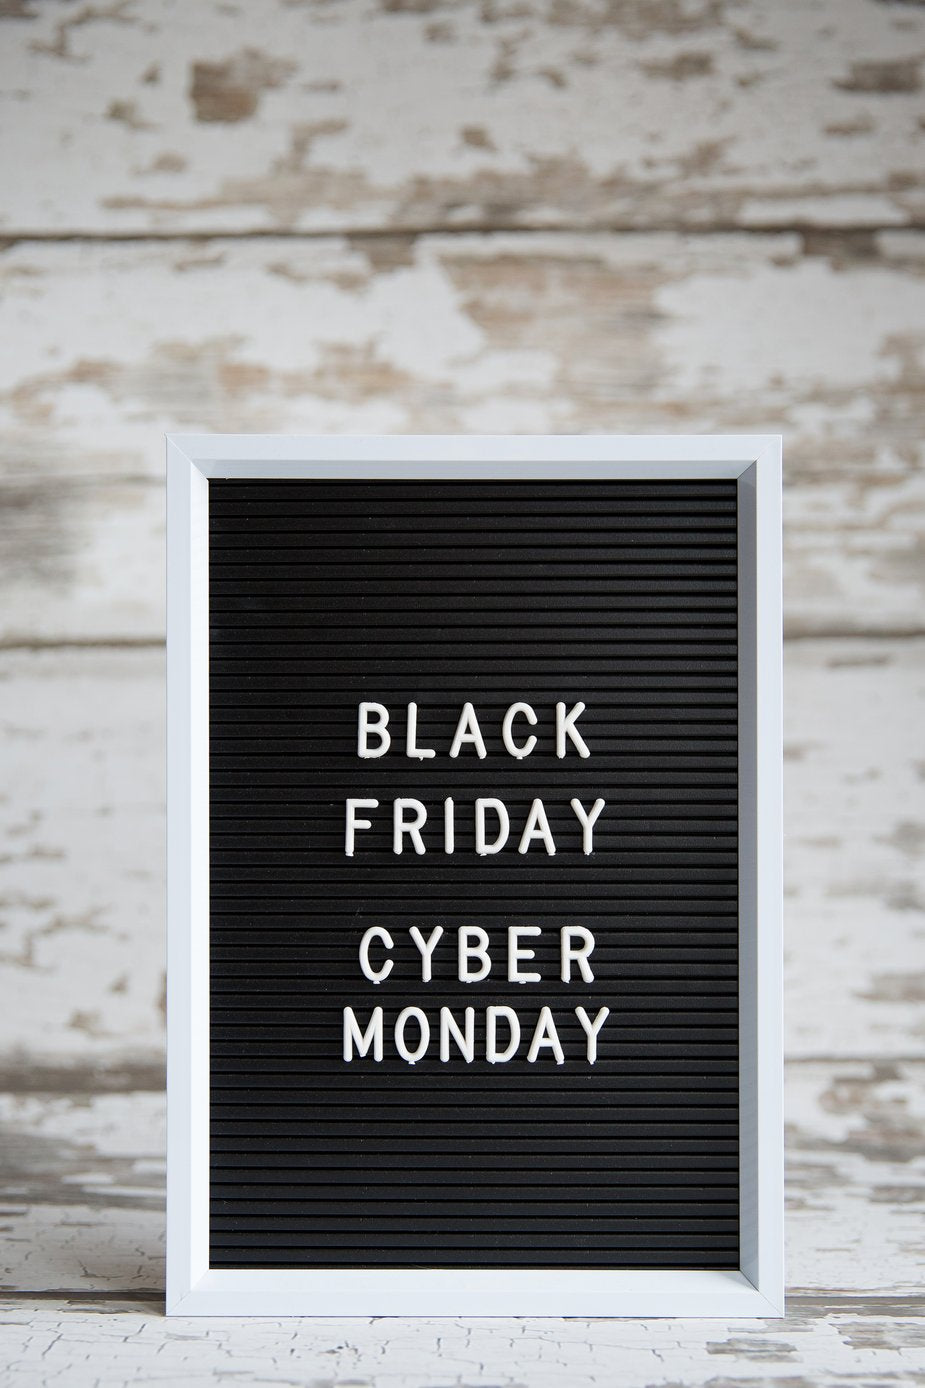 Black Friday / Cyber Monday BFCM Offers